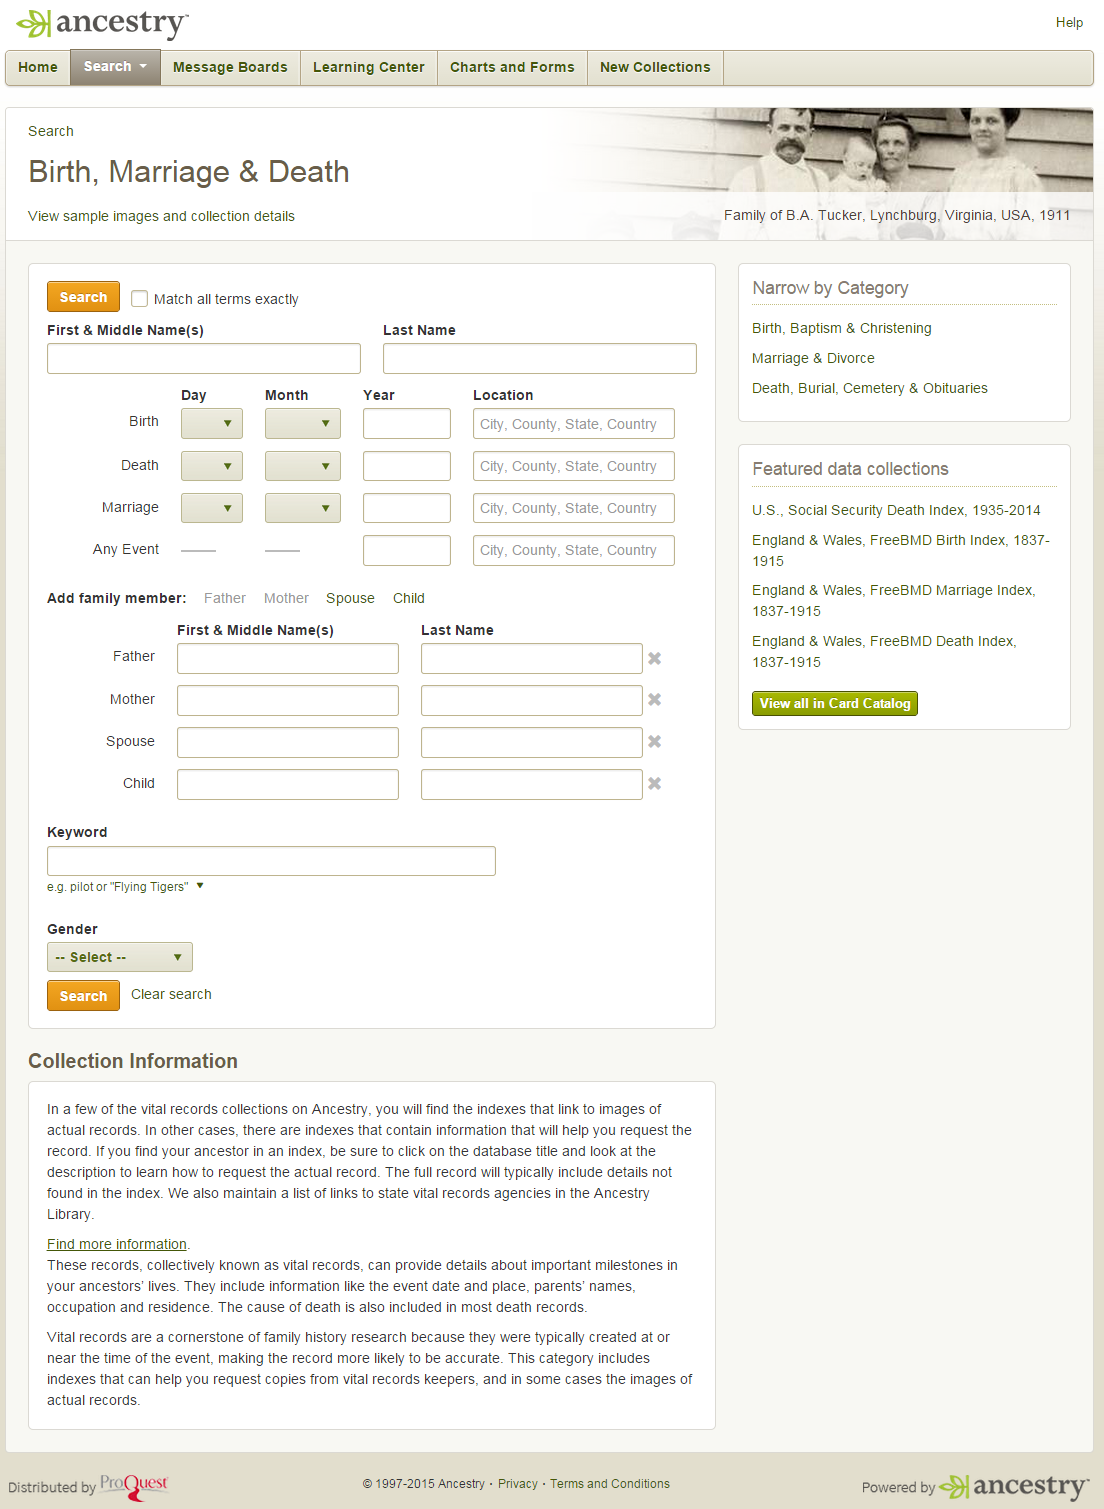 Image of Birth, Marriage, and Death search page in Ancestry Library Edition